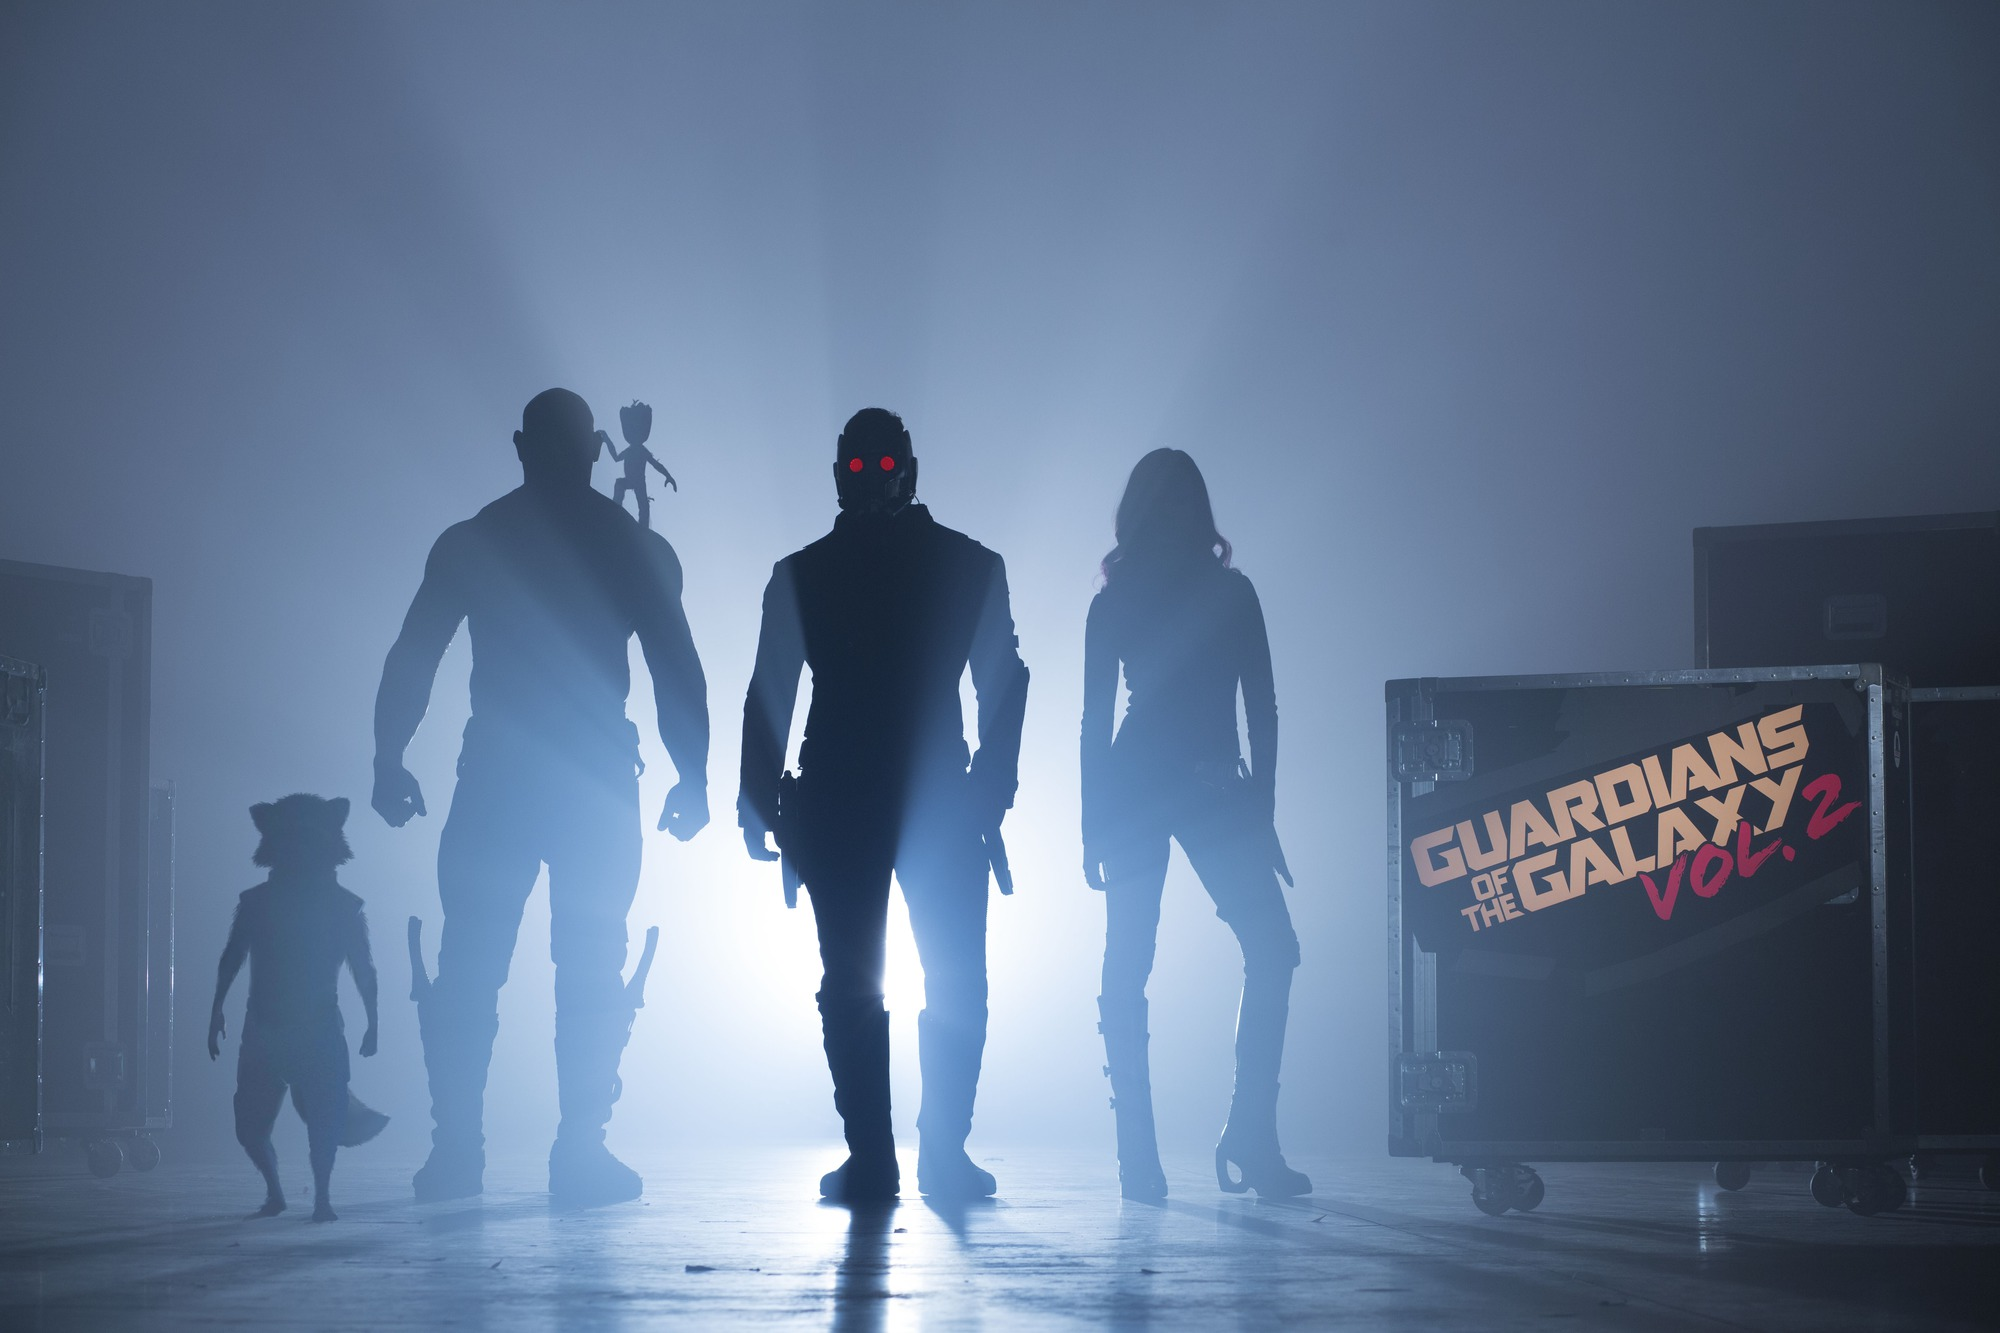 GUARDIANS OF THE GALAXY VOL. 2""